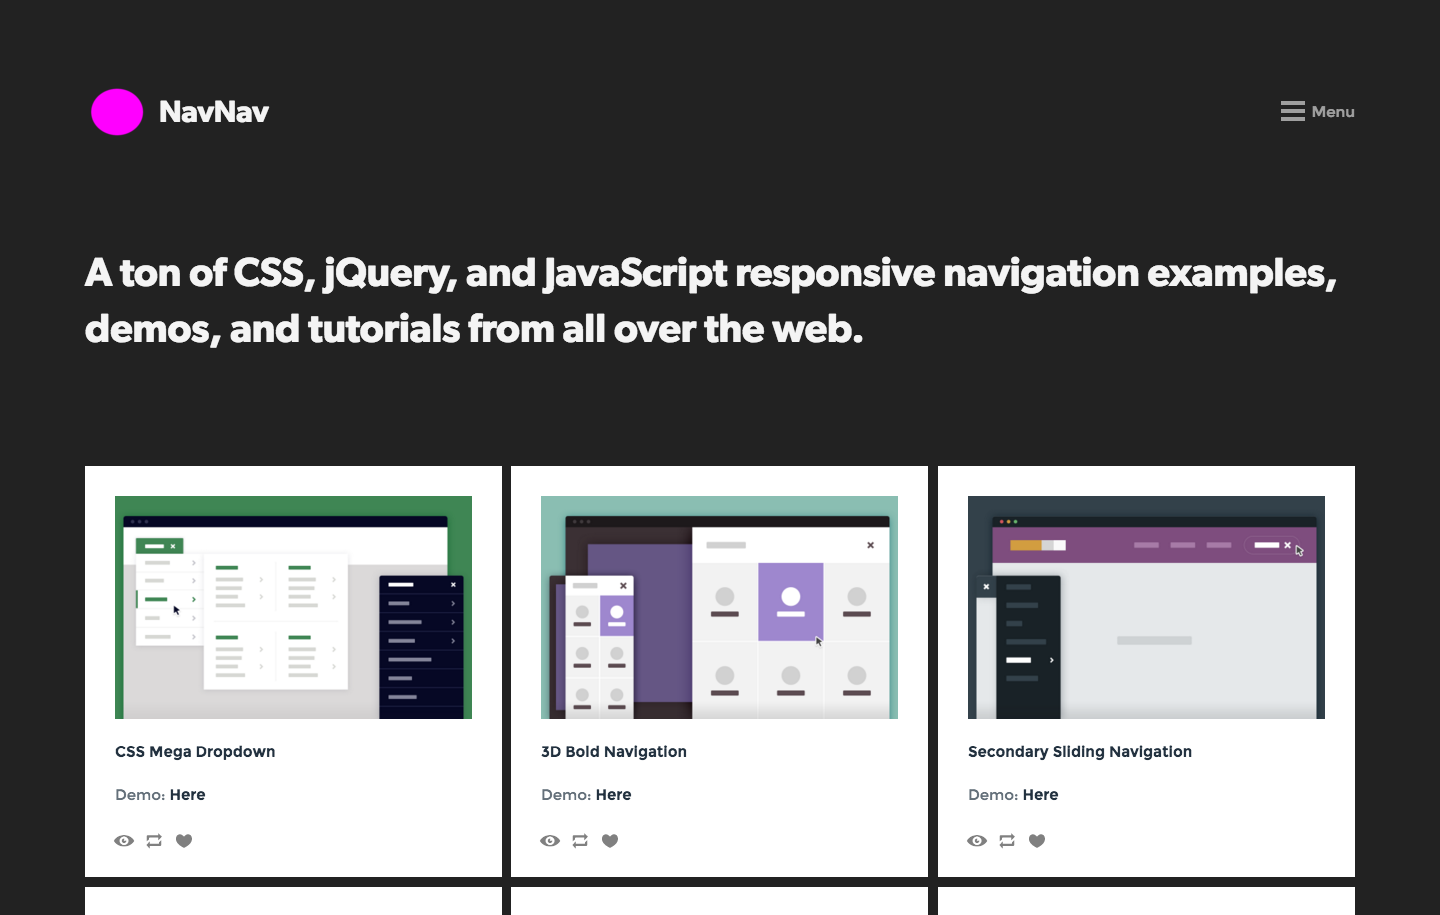 Navnav 90 responsive navigation bar menu tutorials examples and navnav 90 responsive navigation bar menu tutorials examples and demos css malvernweather Images